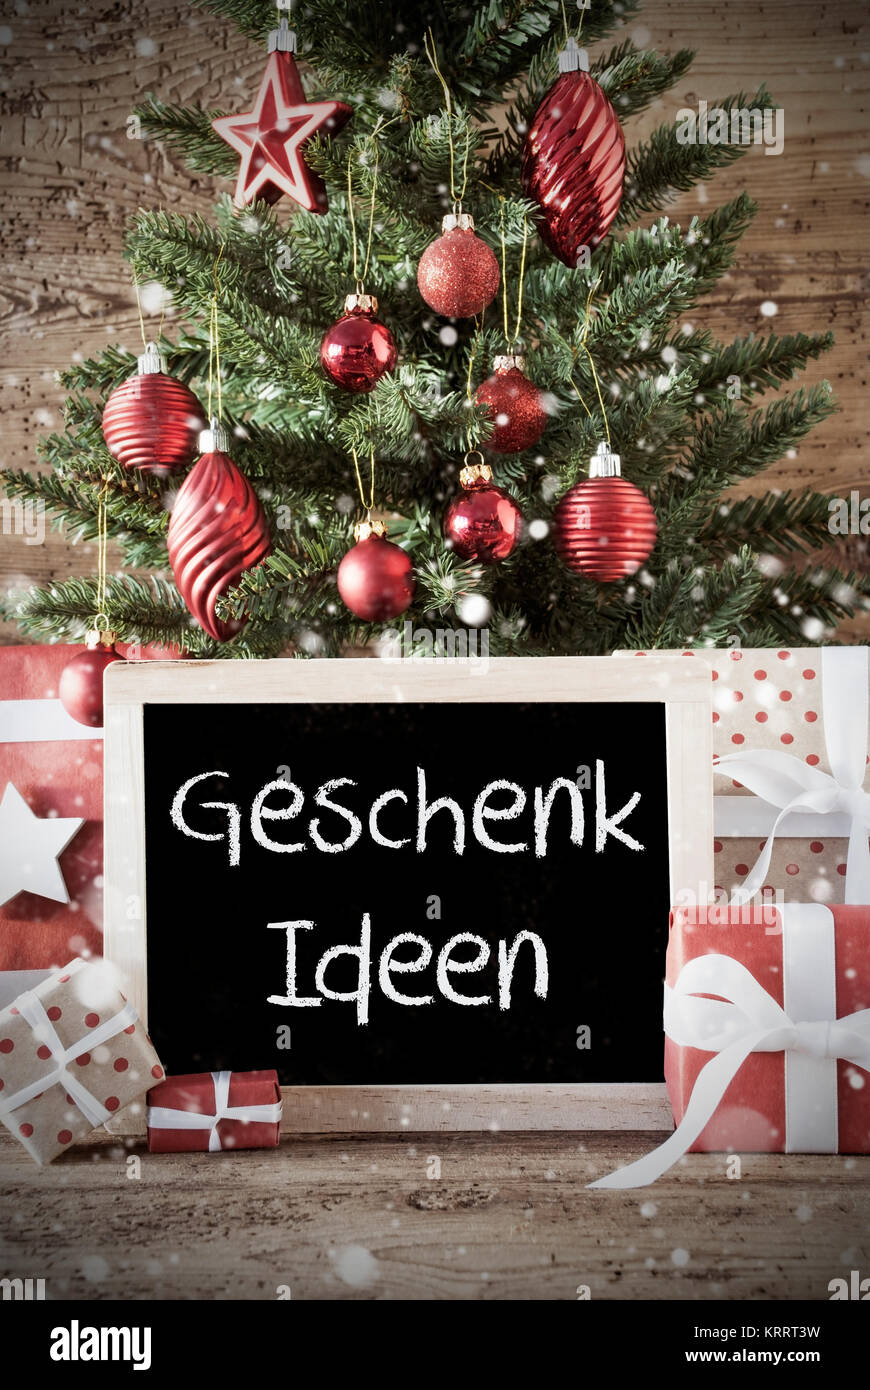 Chalkboard With German Text Geschenk Ideen Means Gift Ideas Stock Photo Alamy